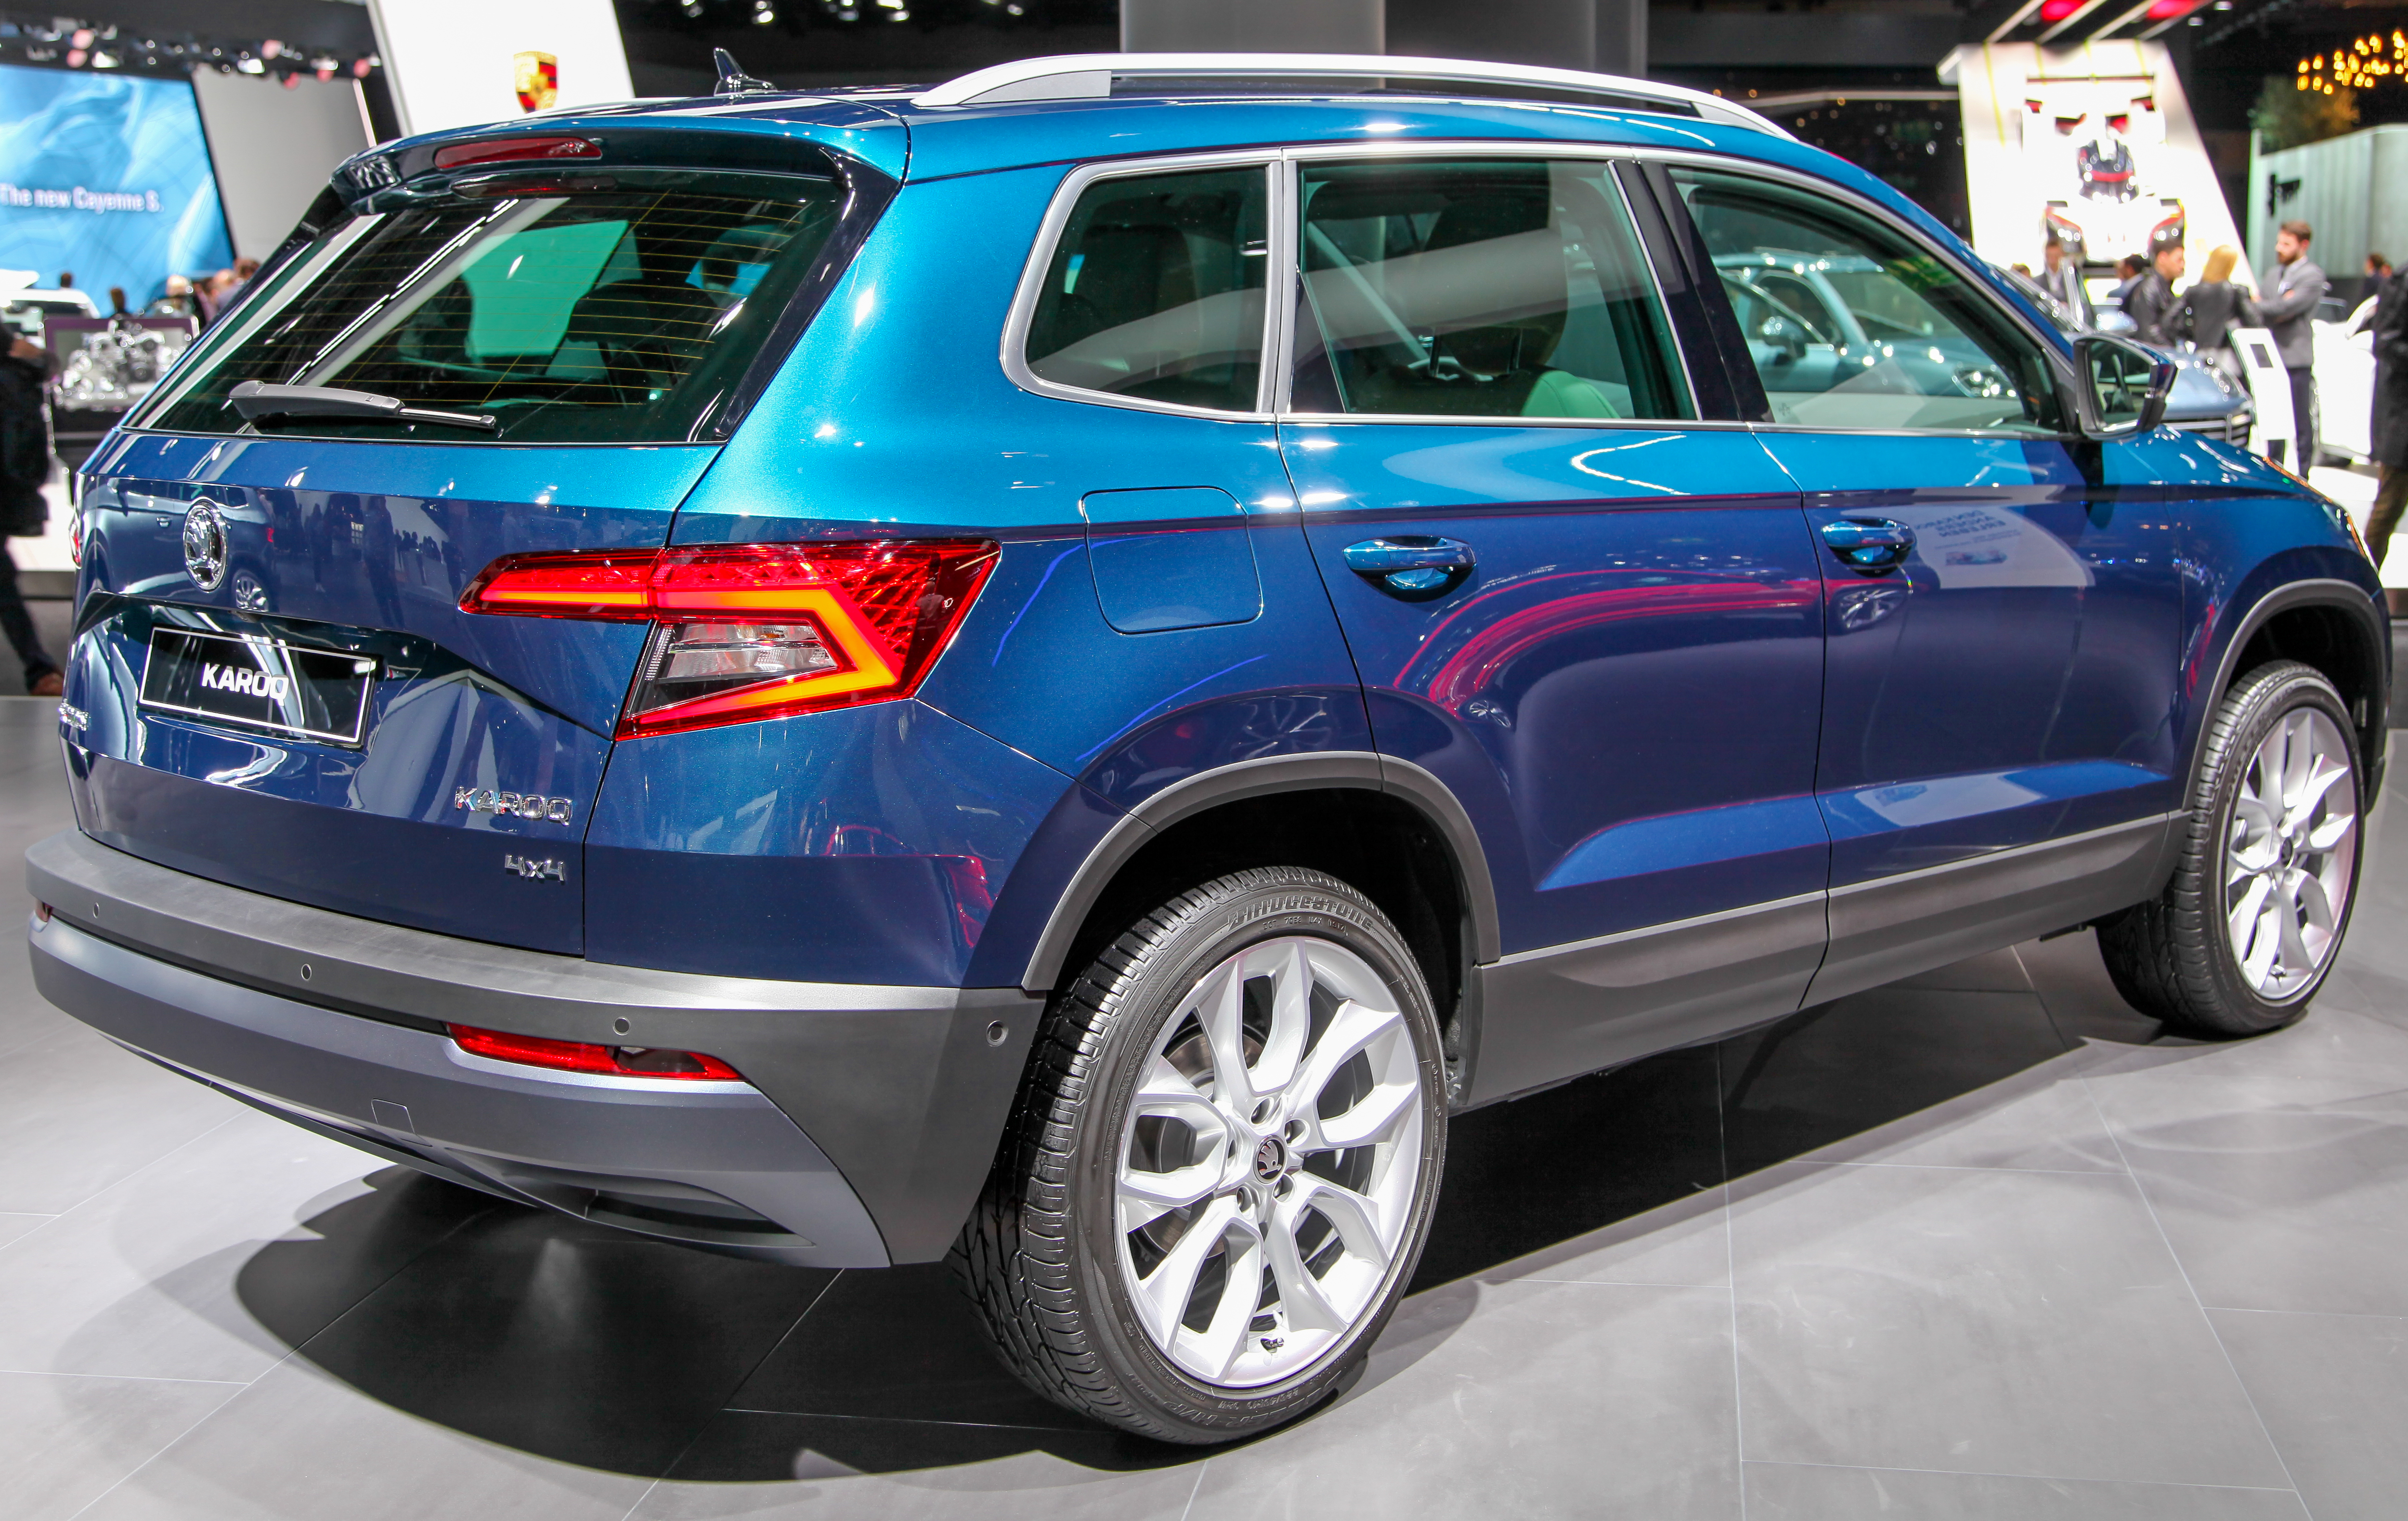 file skoda karoq back img wikimedia commons. Black Bedroom Furniture Sets. Home Design Ideas